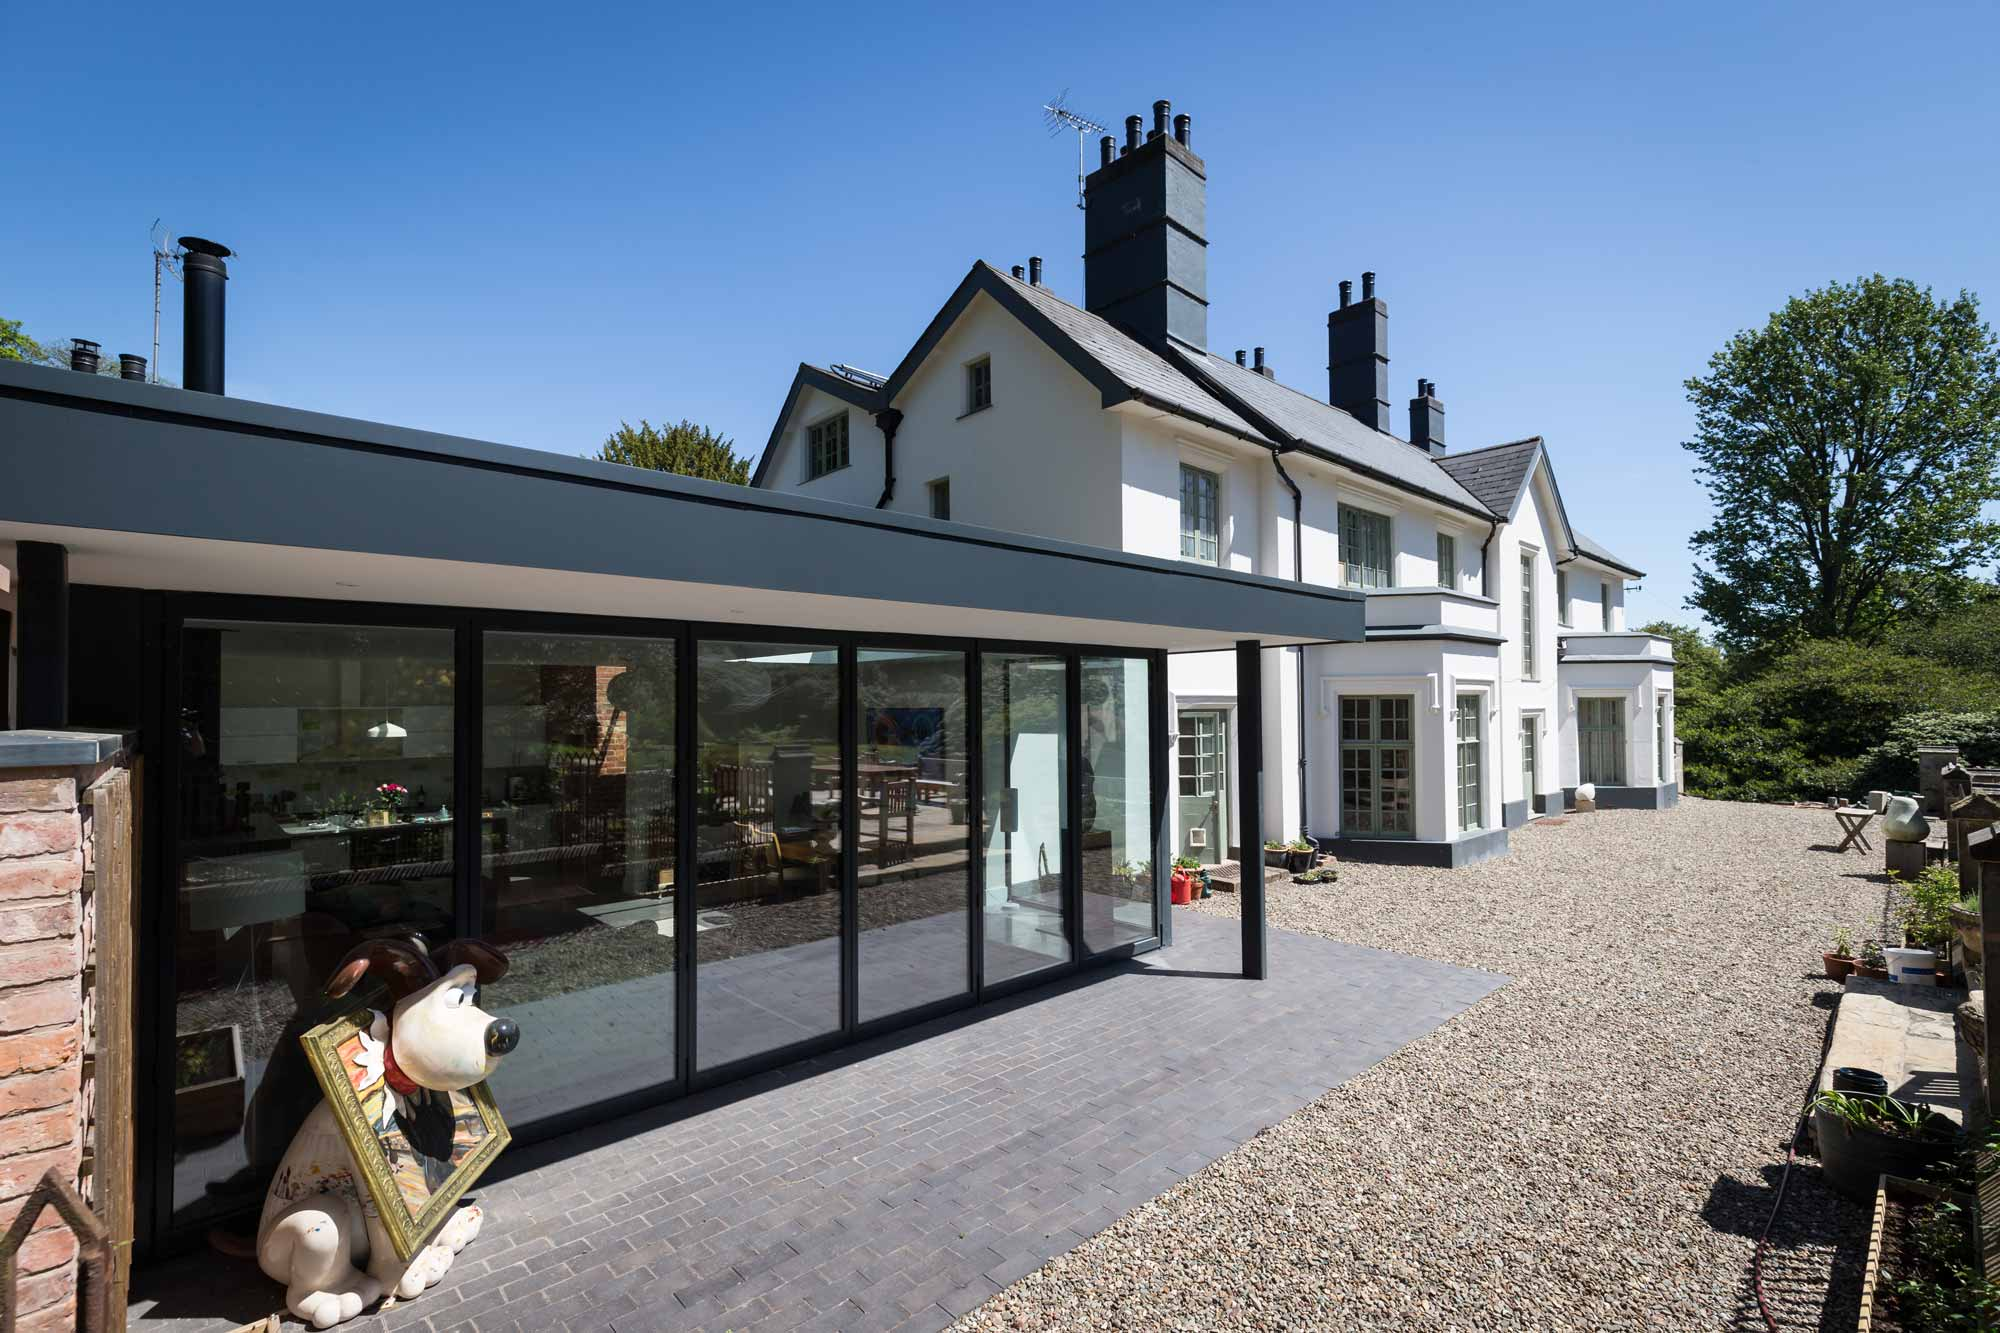 flat roof single storey extension with aluminium fascia and full height bi-fold doors onto patio with overhanging roof extension to a country house in Baldwins Gate